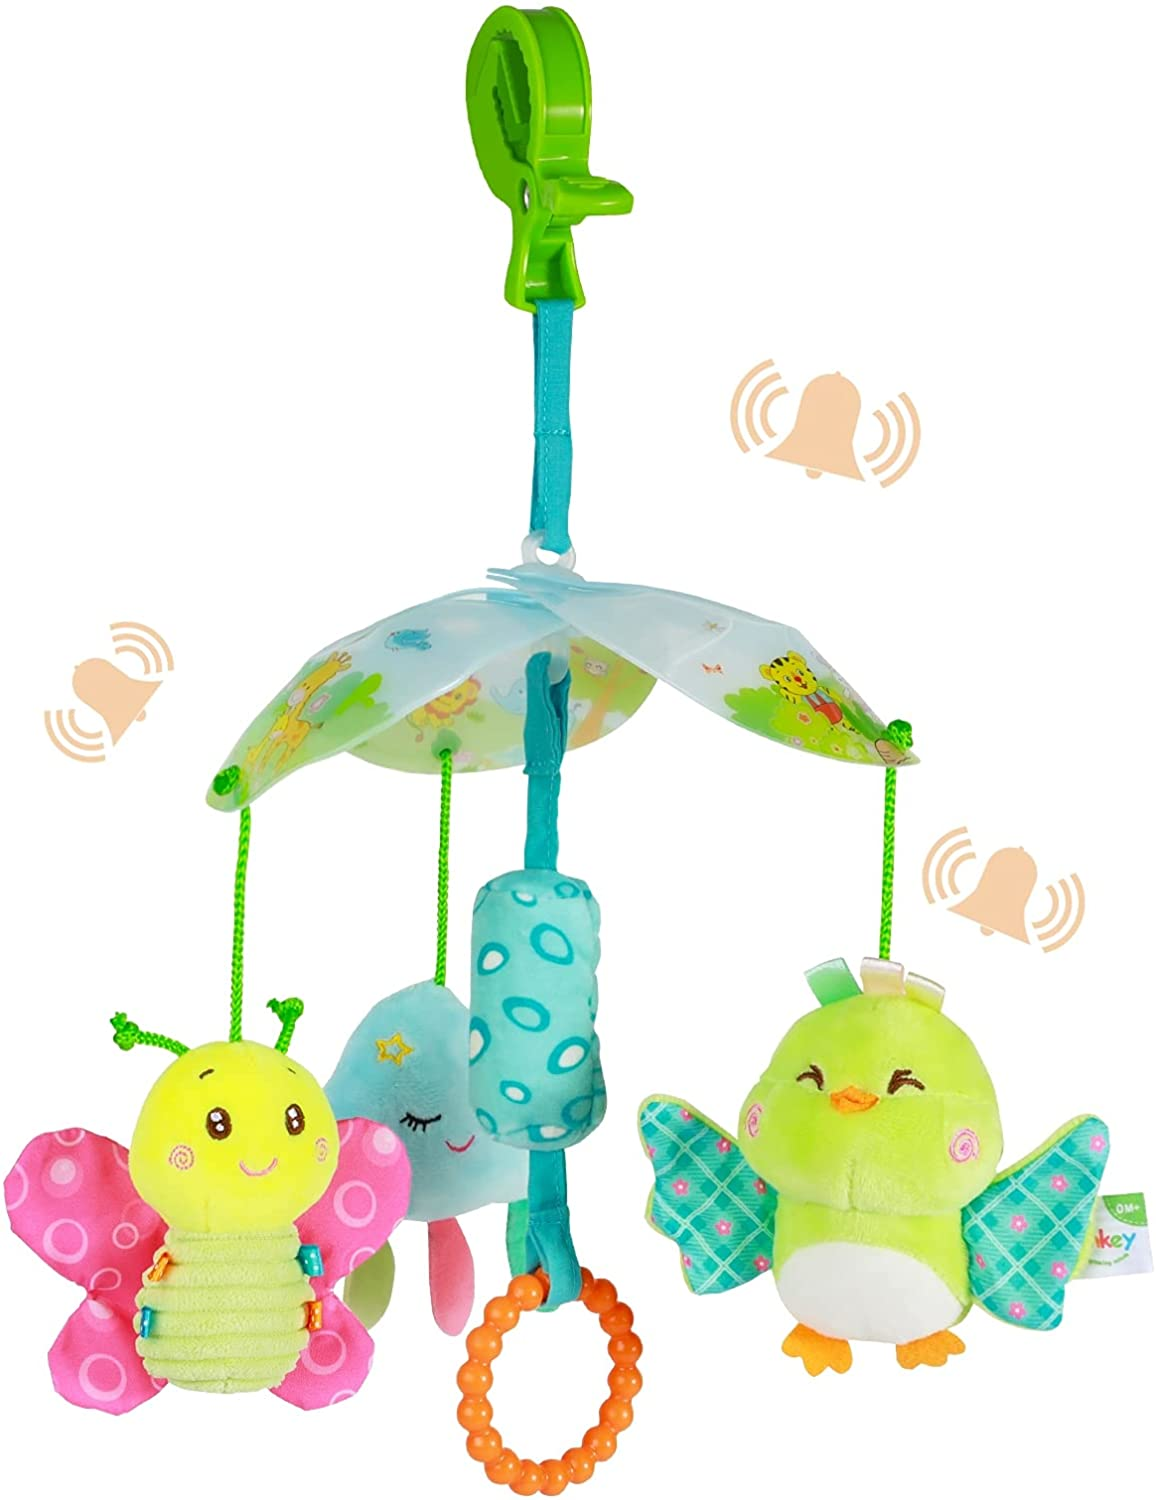 Funsland BabyToys for Toddlers Clip On Car SeatToy and BabyStroller Toy with Hanging Rattle for Infants SensoryToys forBaby Girls and Boys for Ages 3 Months & up